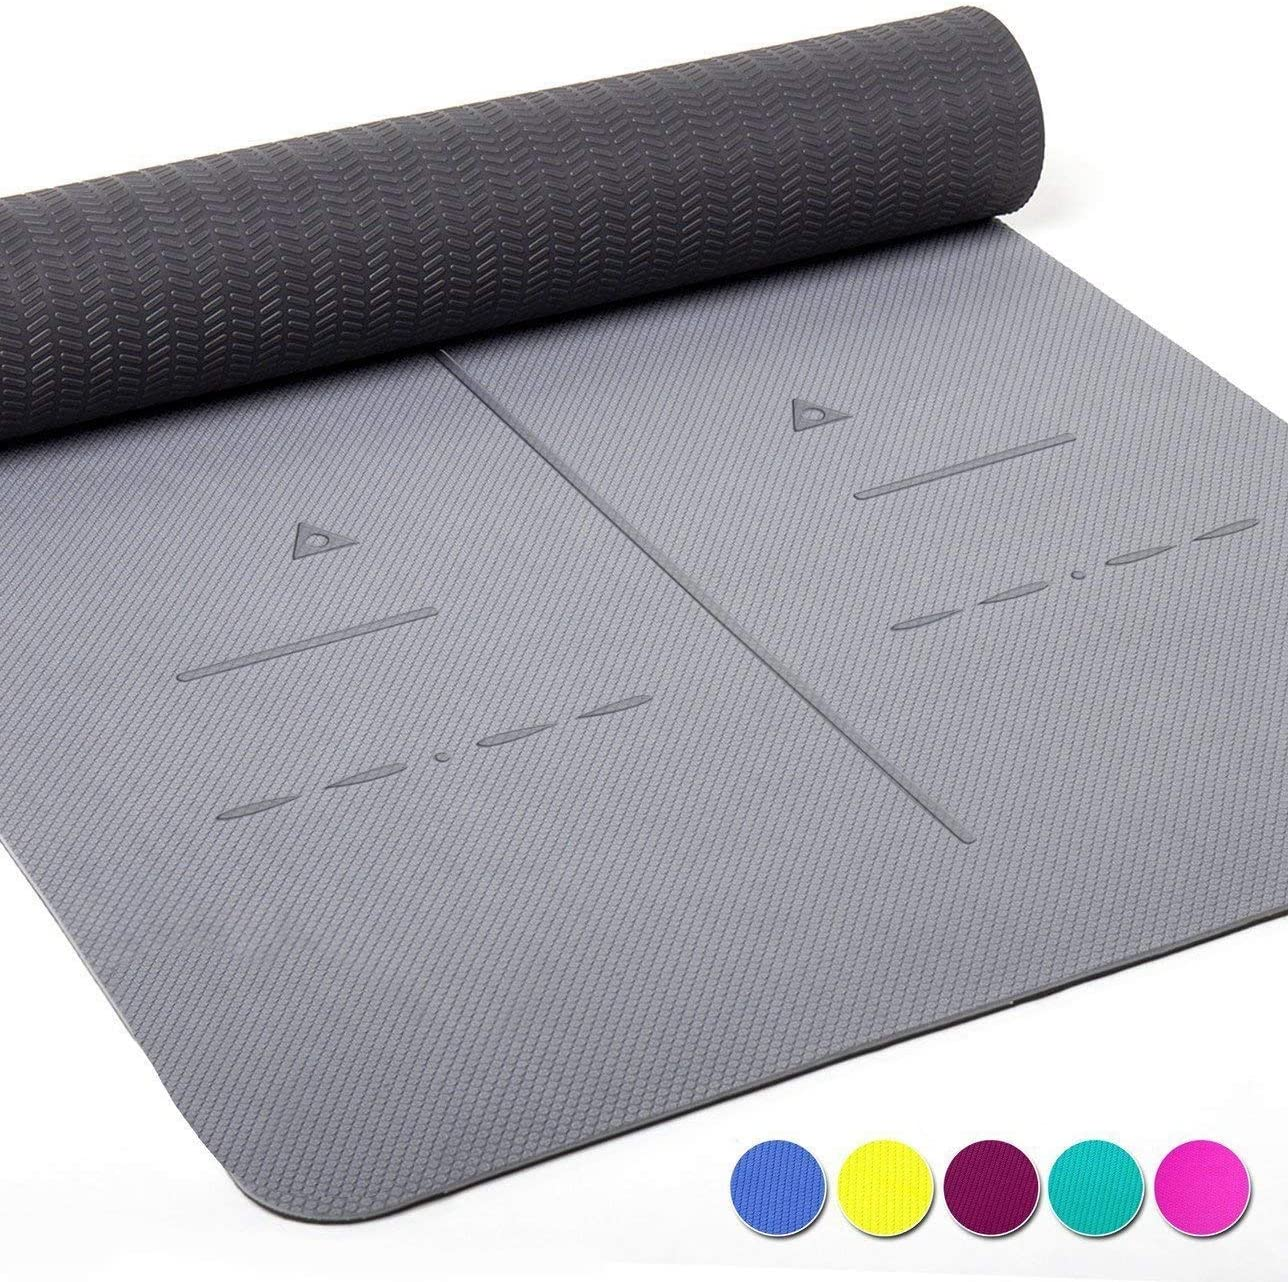 Top 10 Best Eco Friendly Yoga Mat In 2020 The Double Check